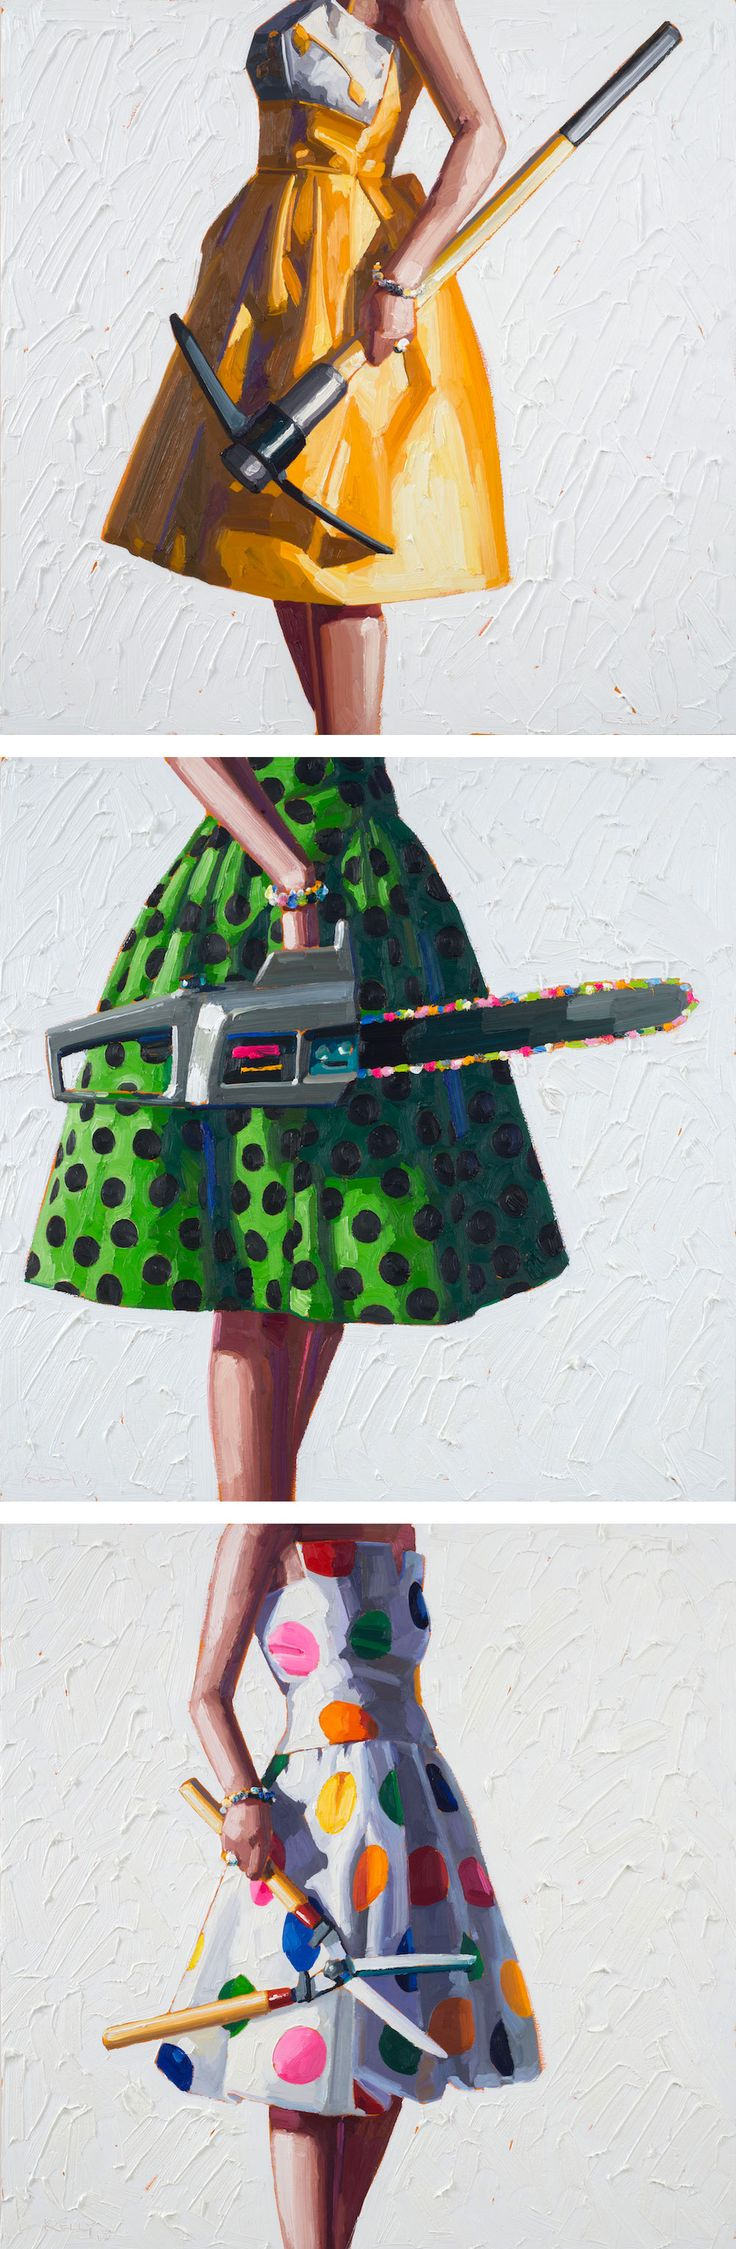 Kelly Reemtsen's Painterly Juxtapositions of Chic Dresses and Power Tools Showcase Modern Femininity